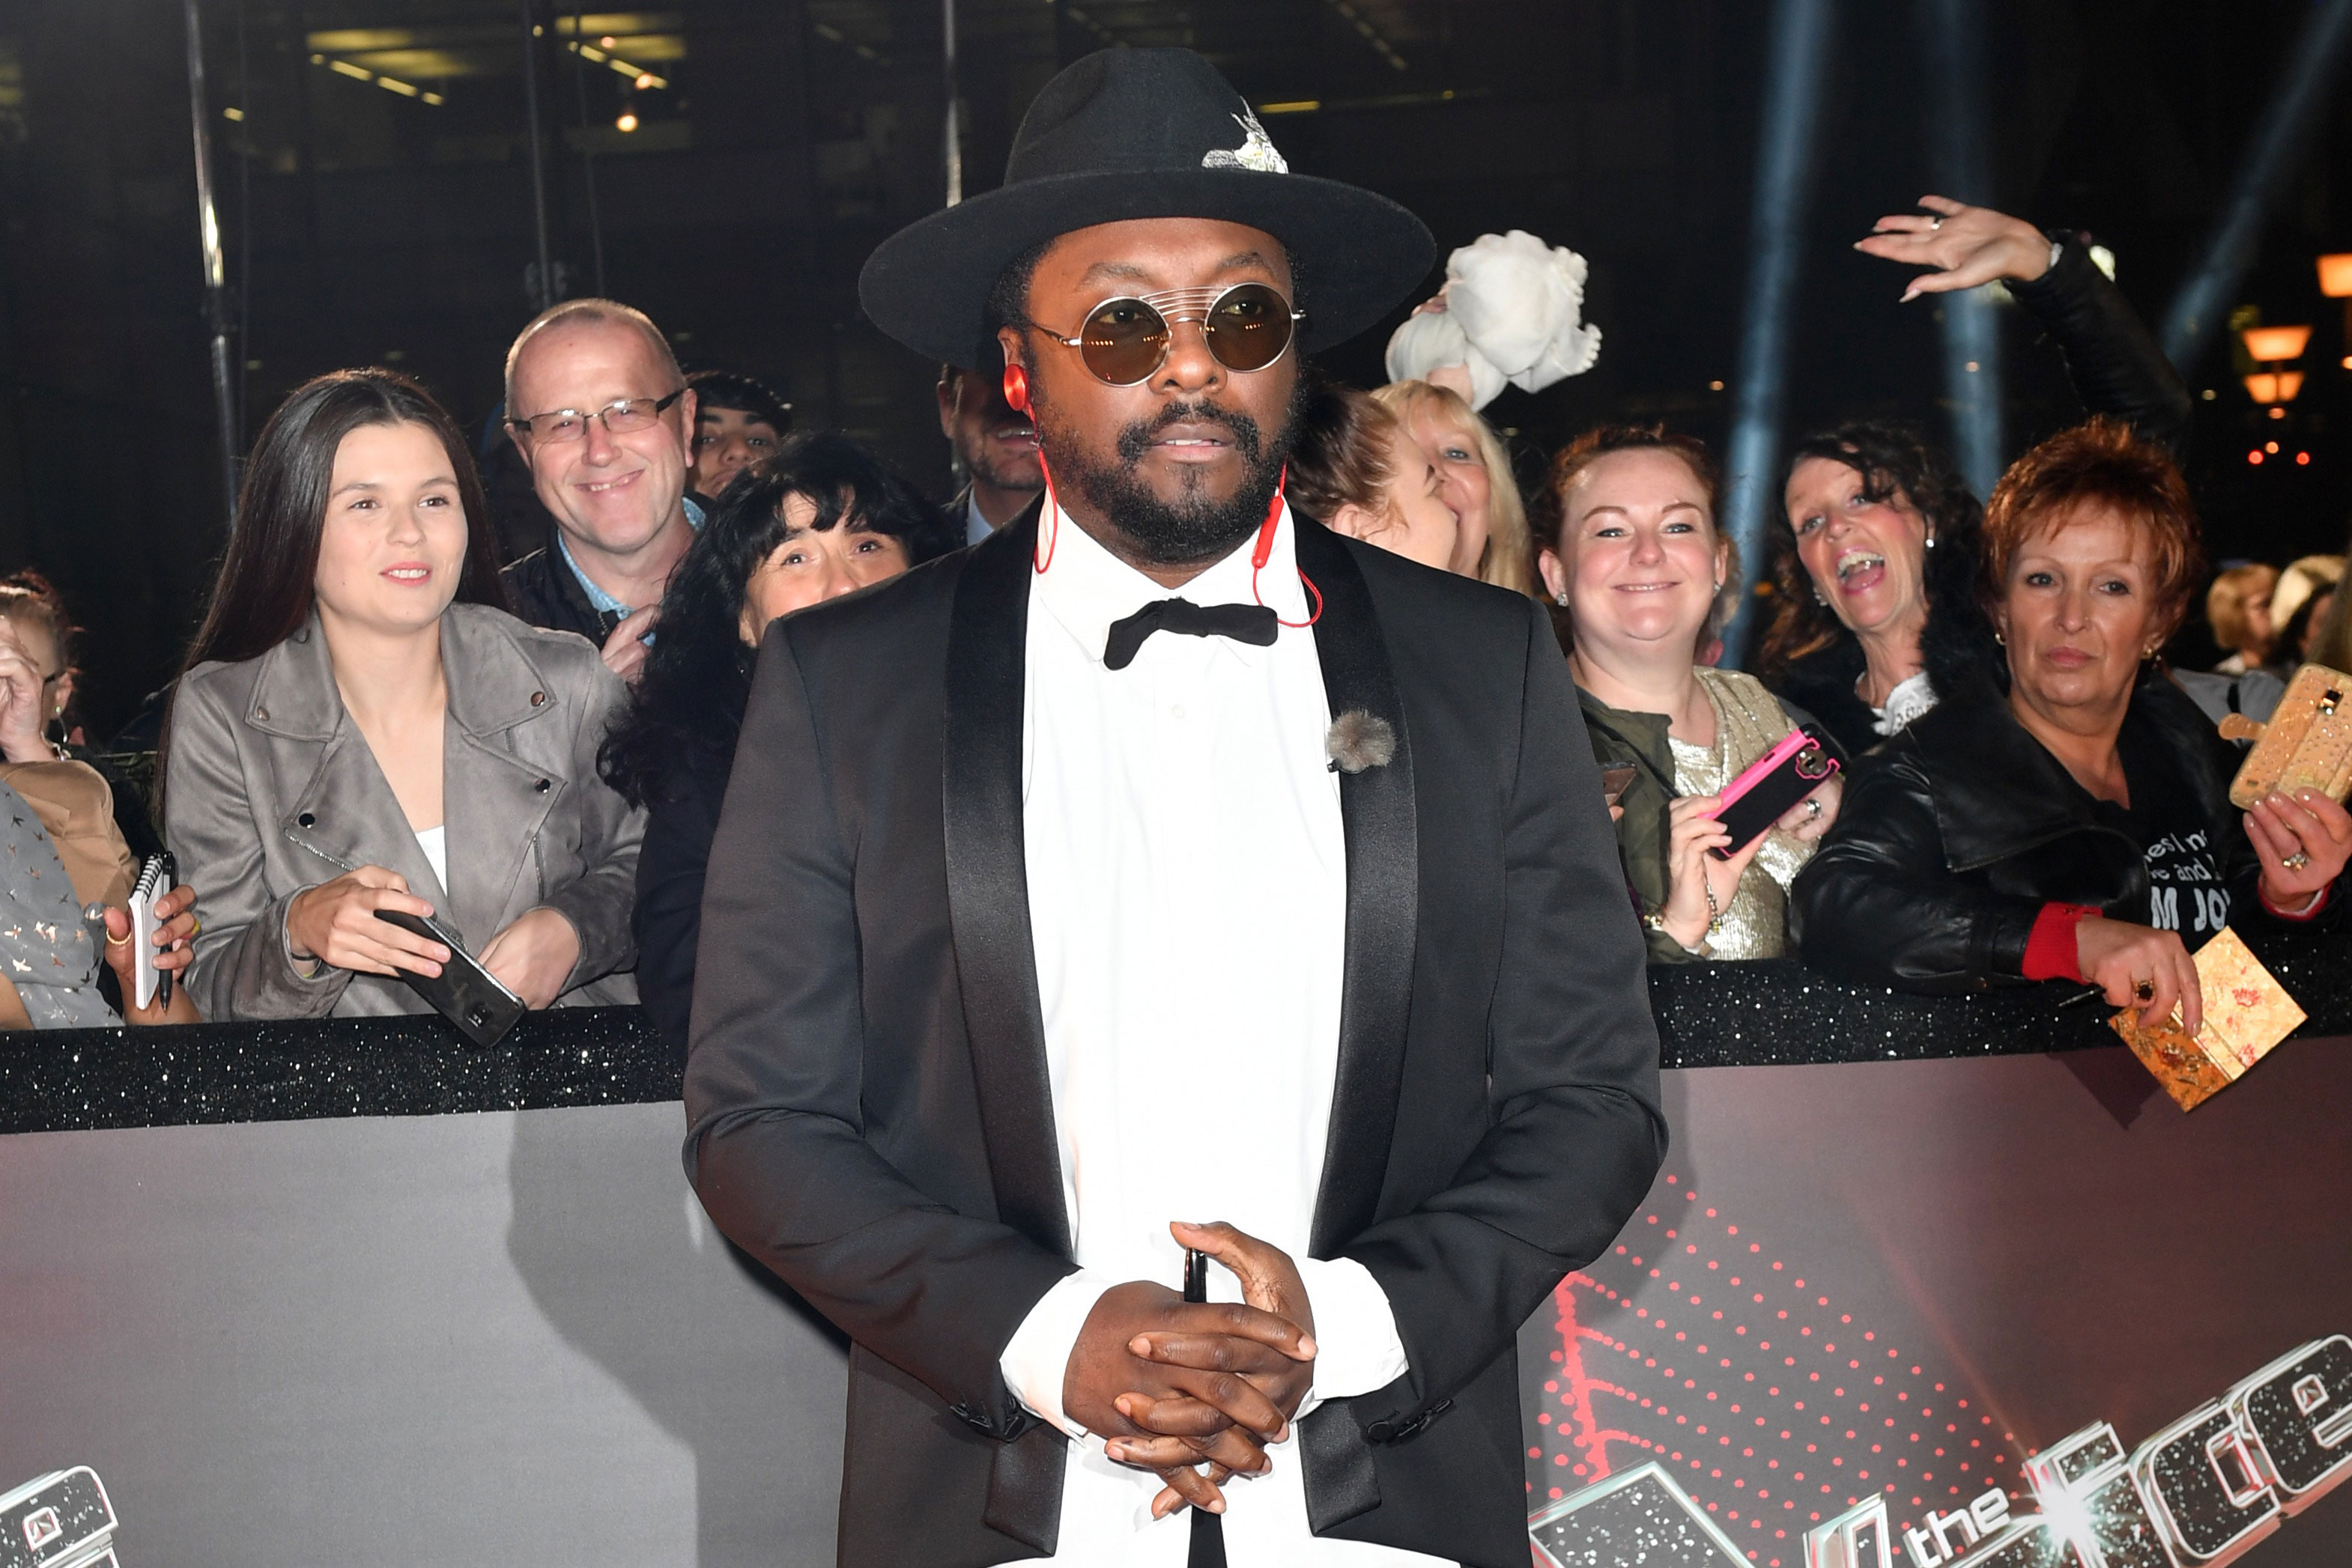 Coach will.i.am on the red carpet for The Voice UK